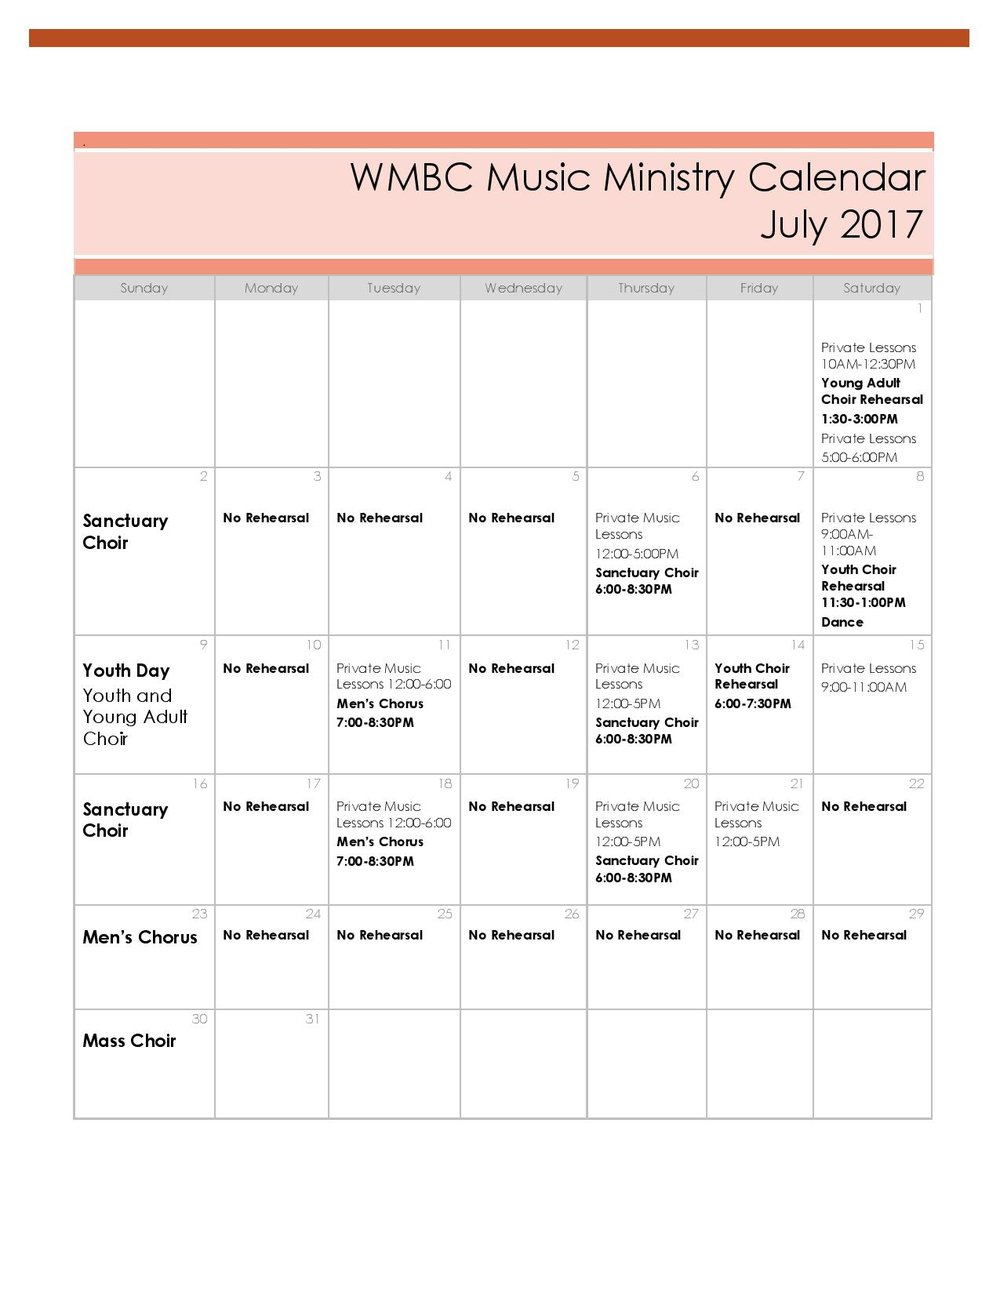 WMBC Music Ministry Newsletter July 2017  -1-page-005.jpg